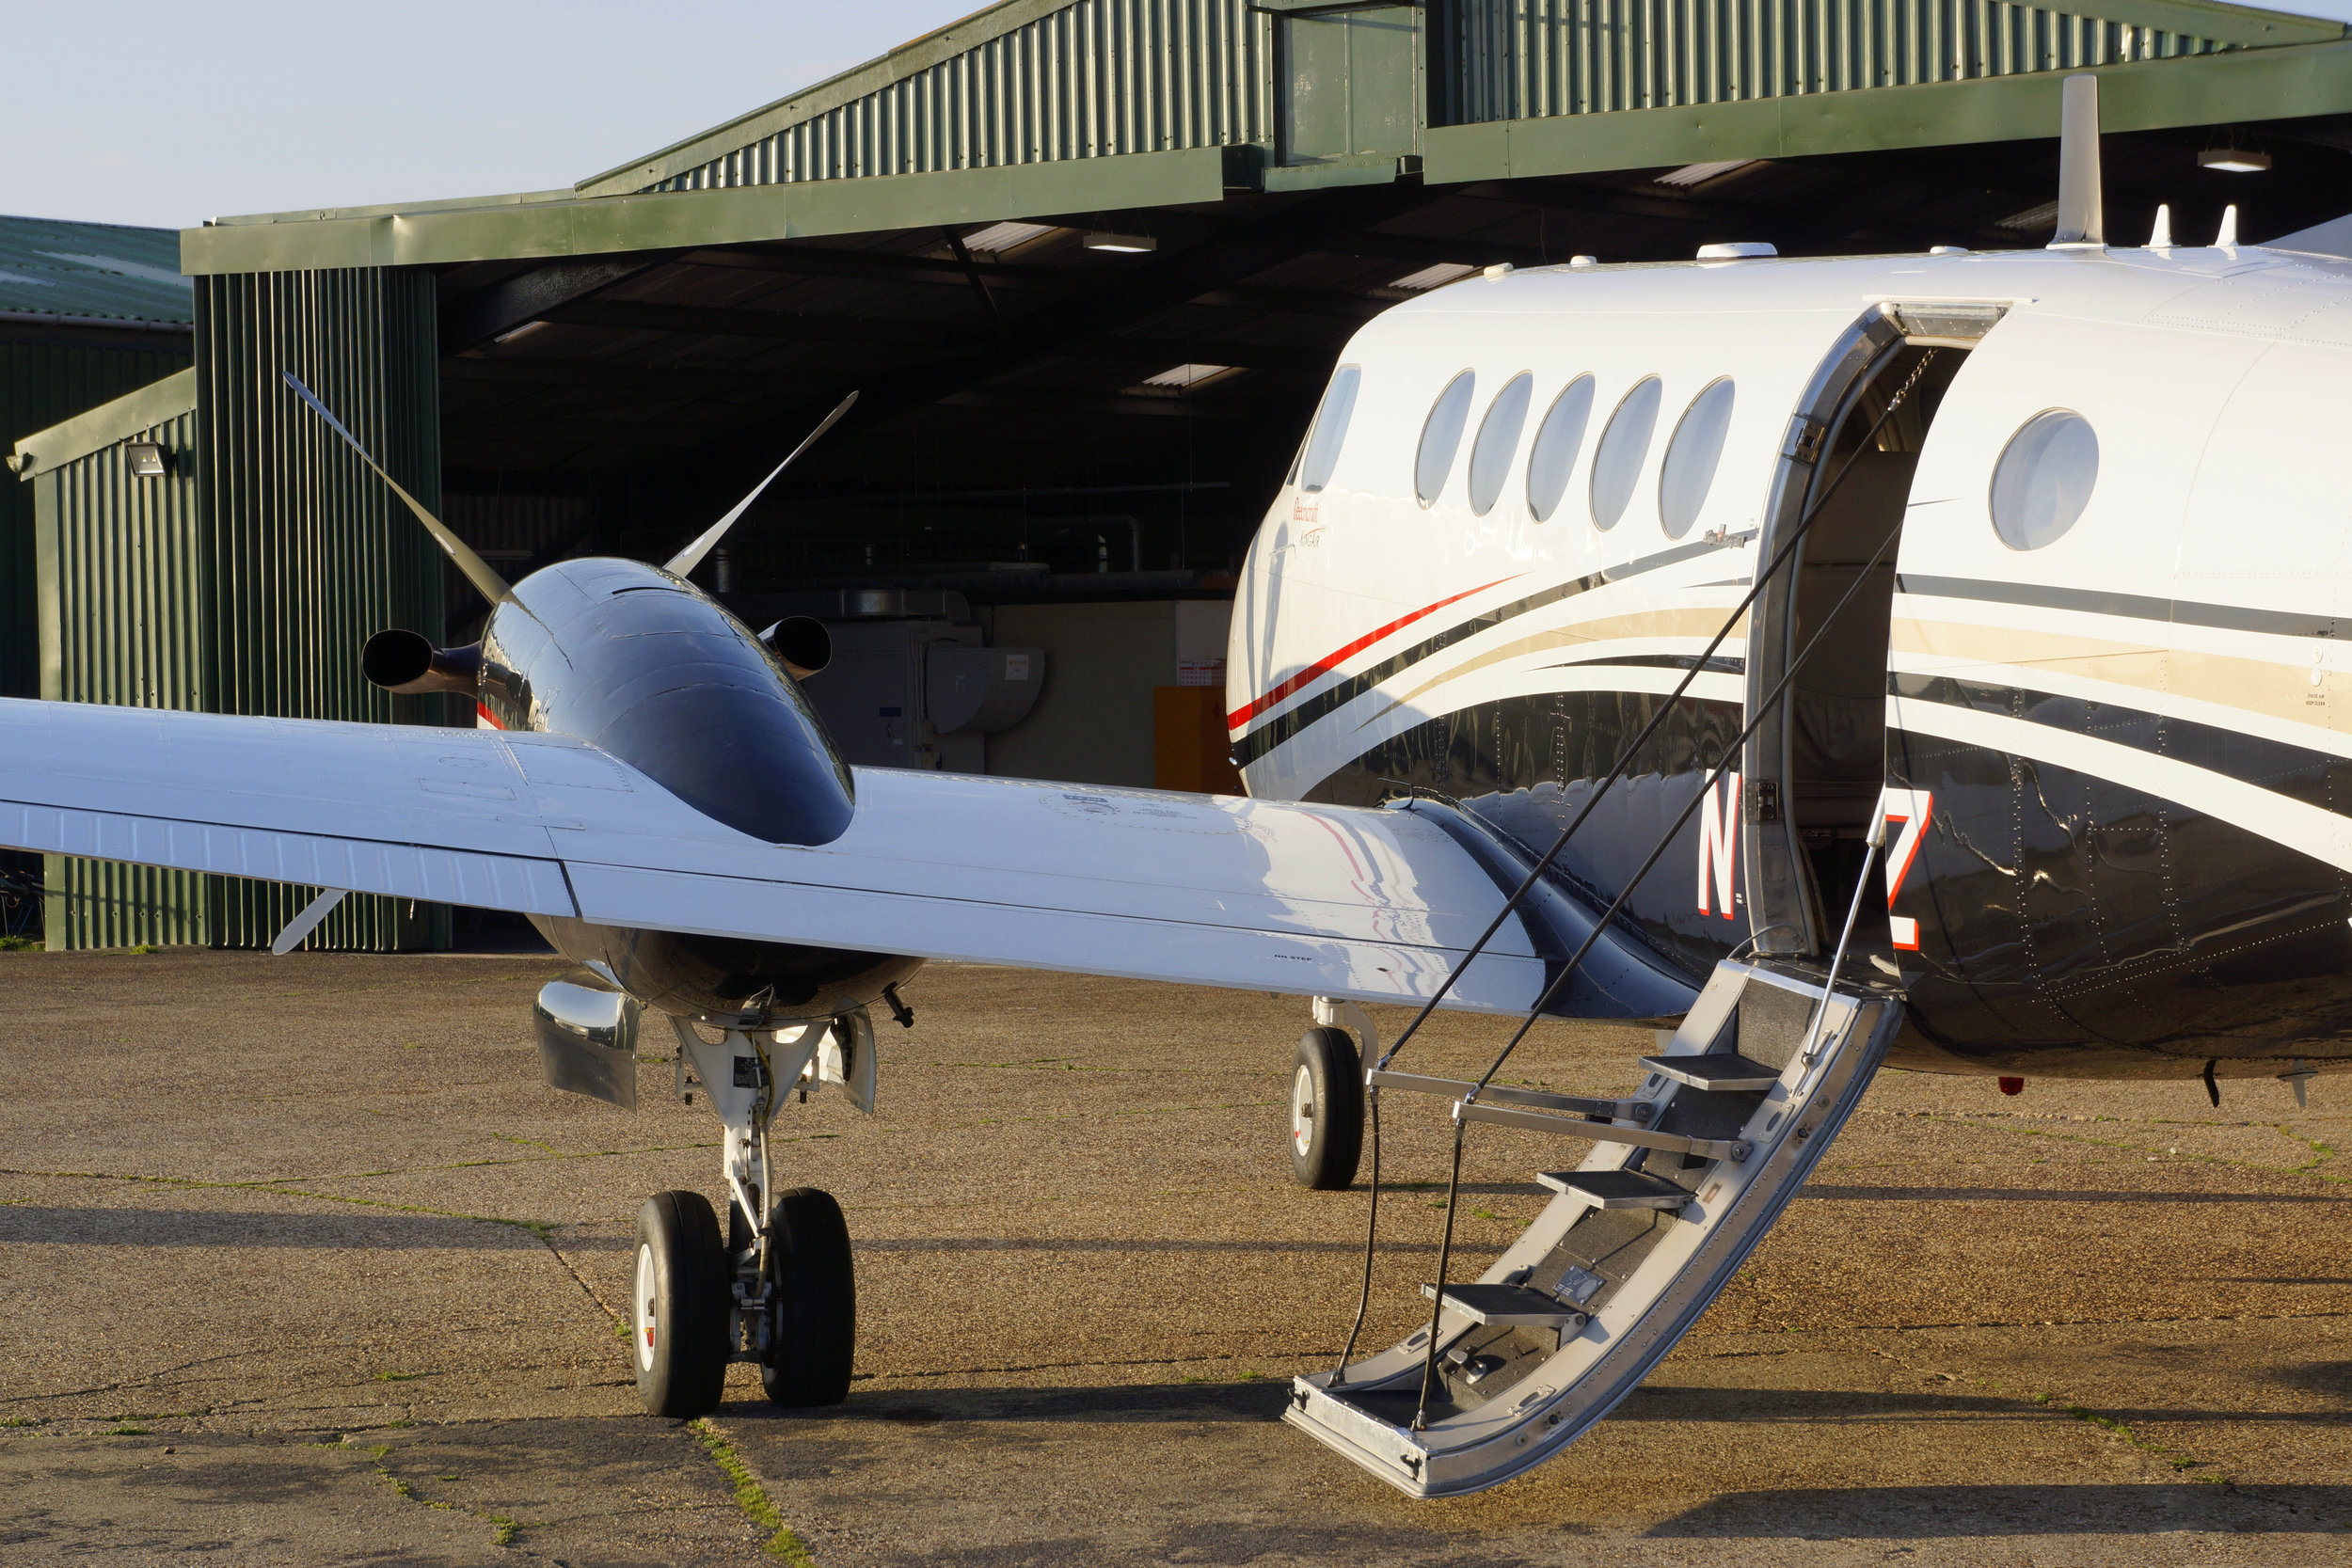 Charter - Take control of your time with our corporate and private charter flights.